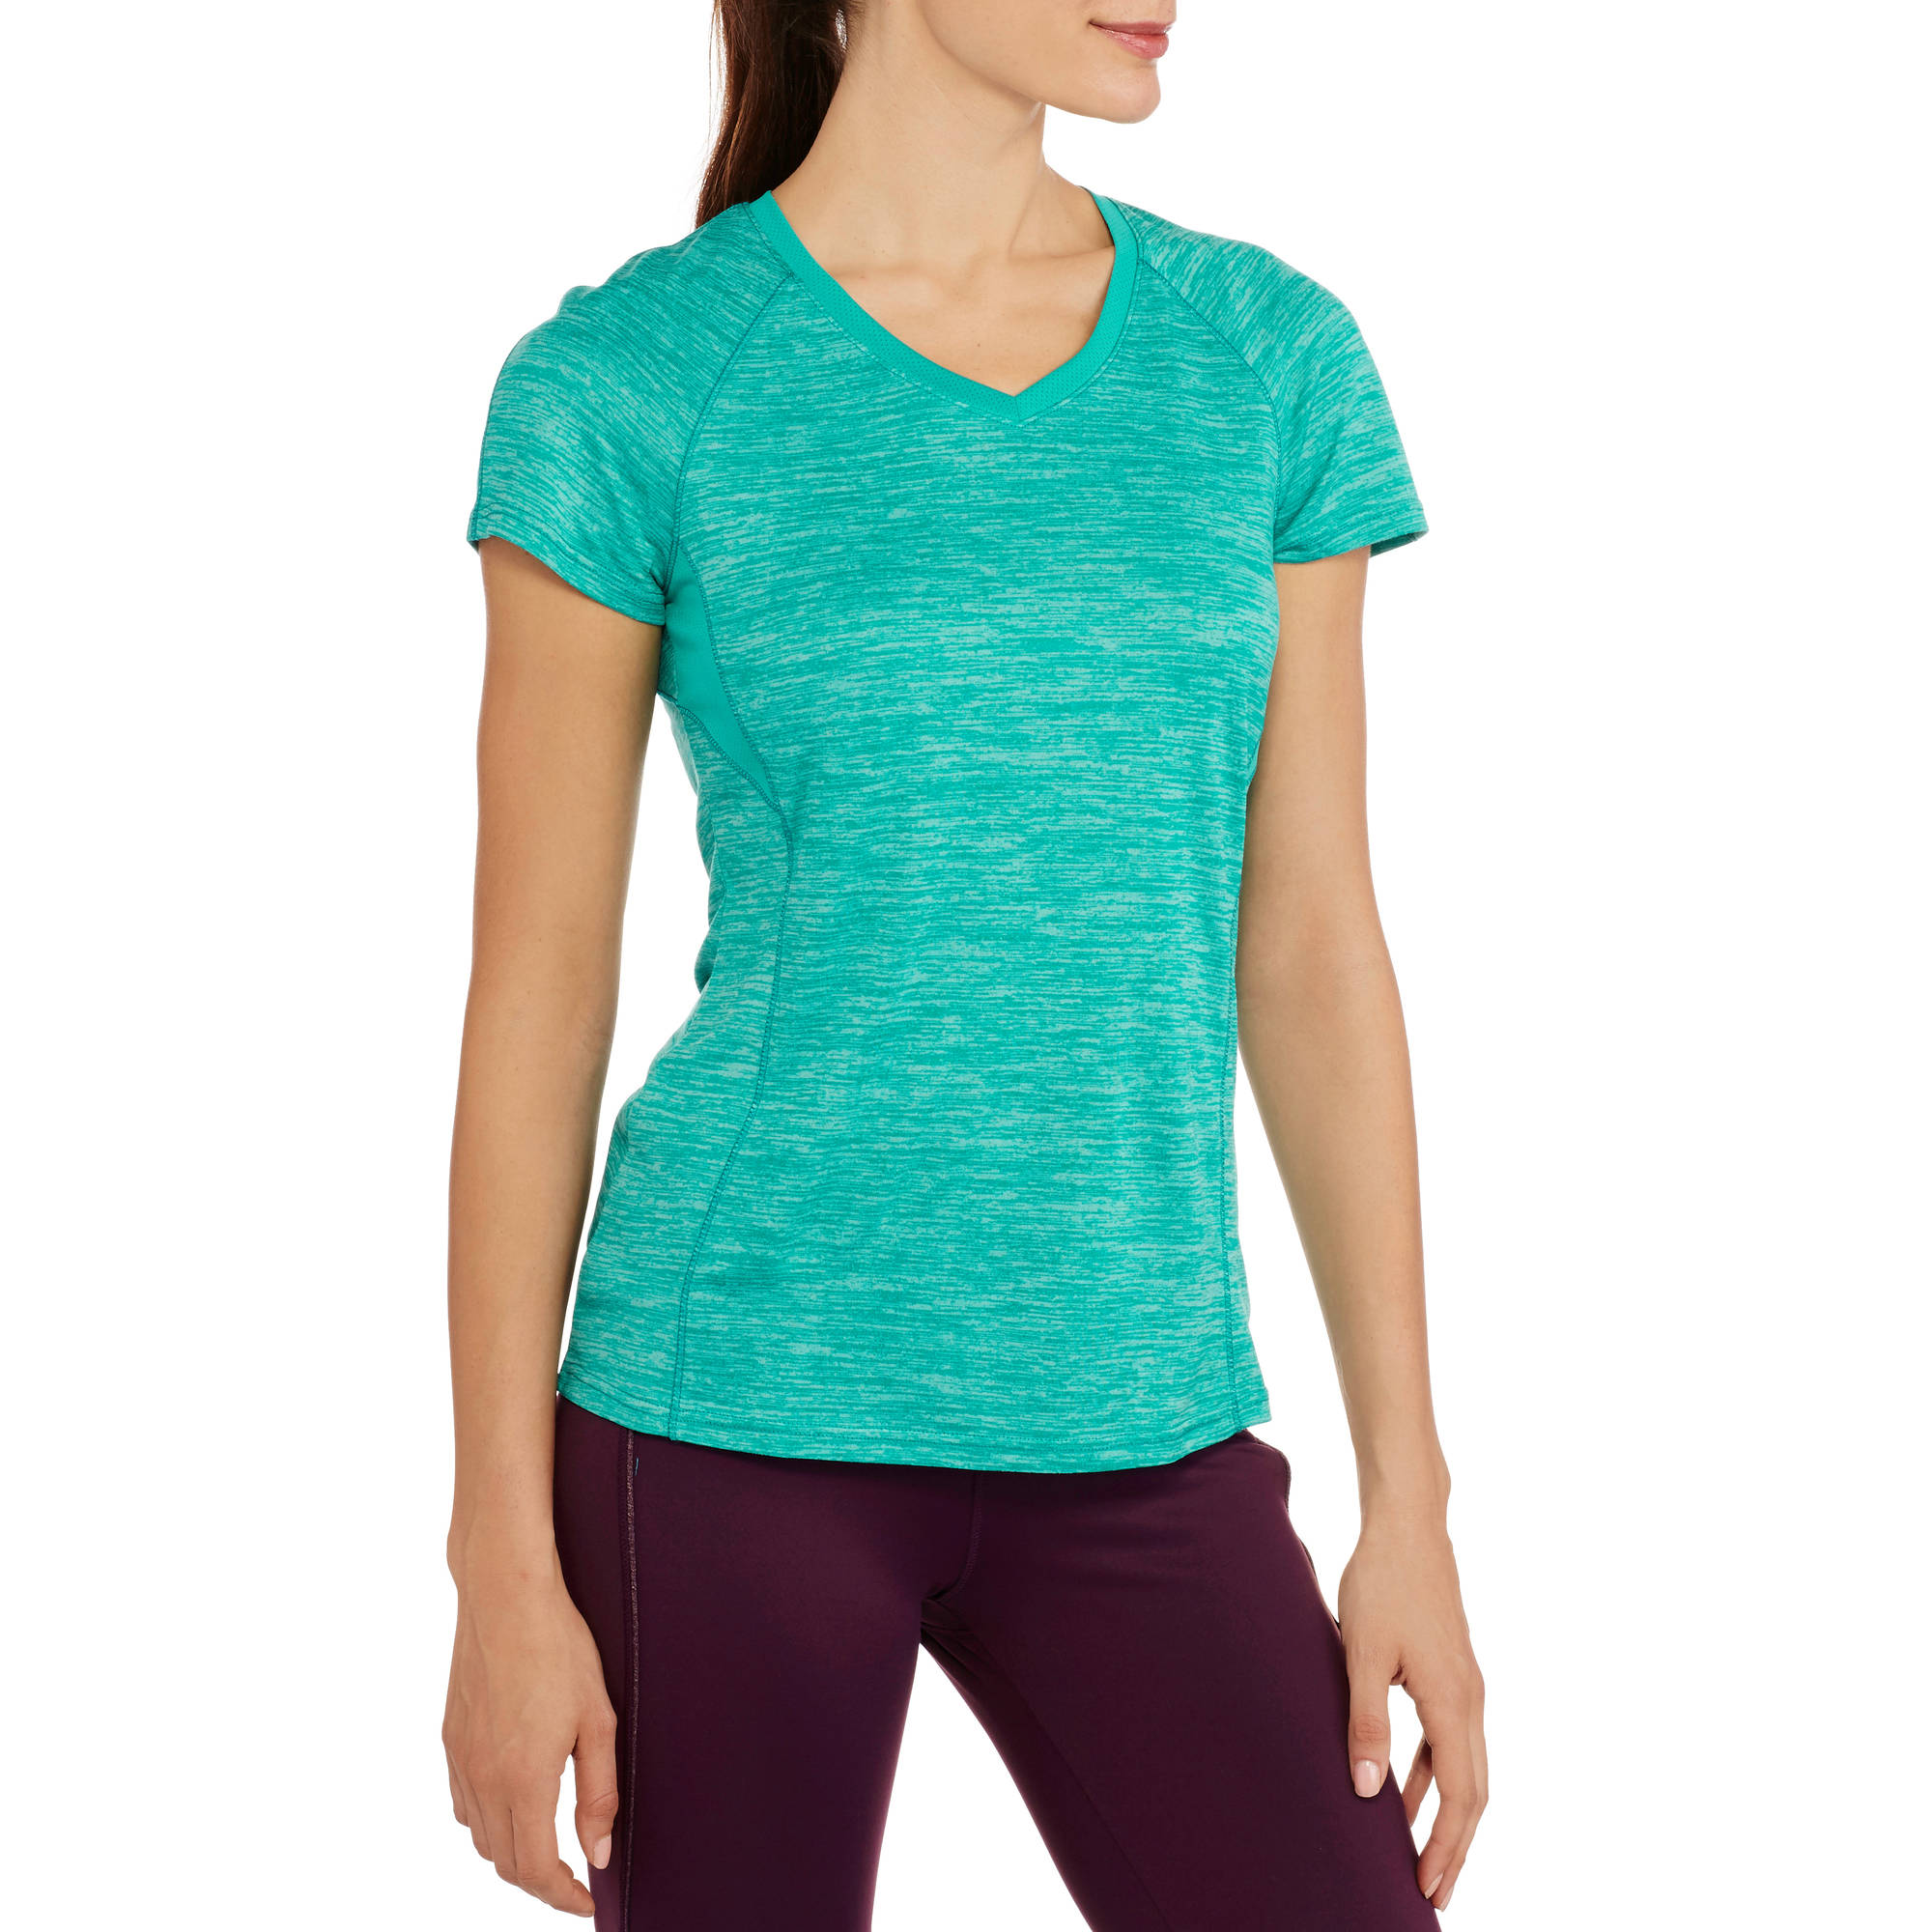 Danskin Now Women's Active Performance T-Shirt